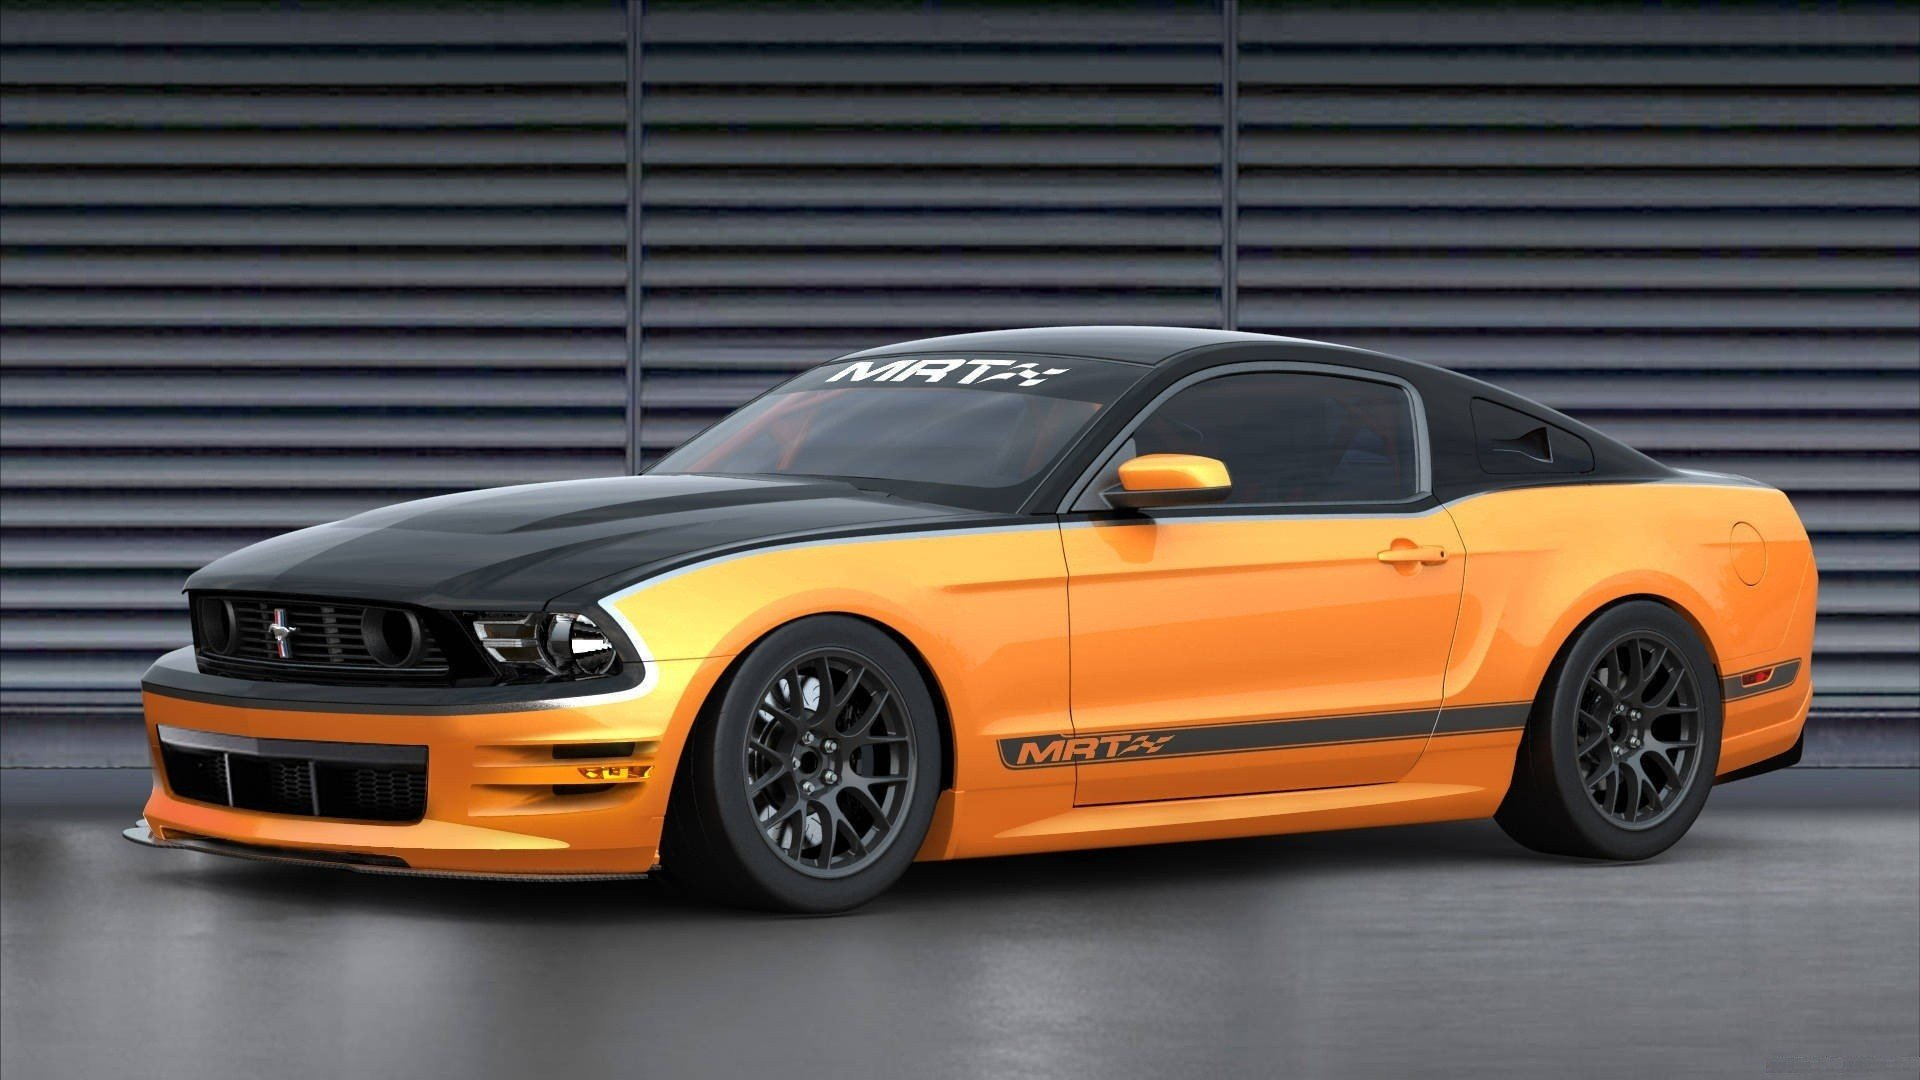 Cars Ford Mustang Shelby Mustang Ford Shelby Ford Mustang Gt